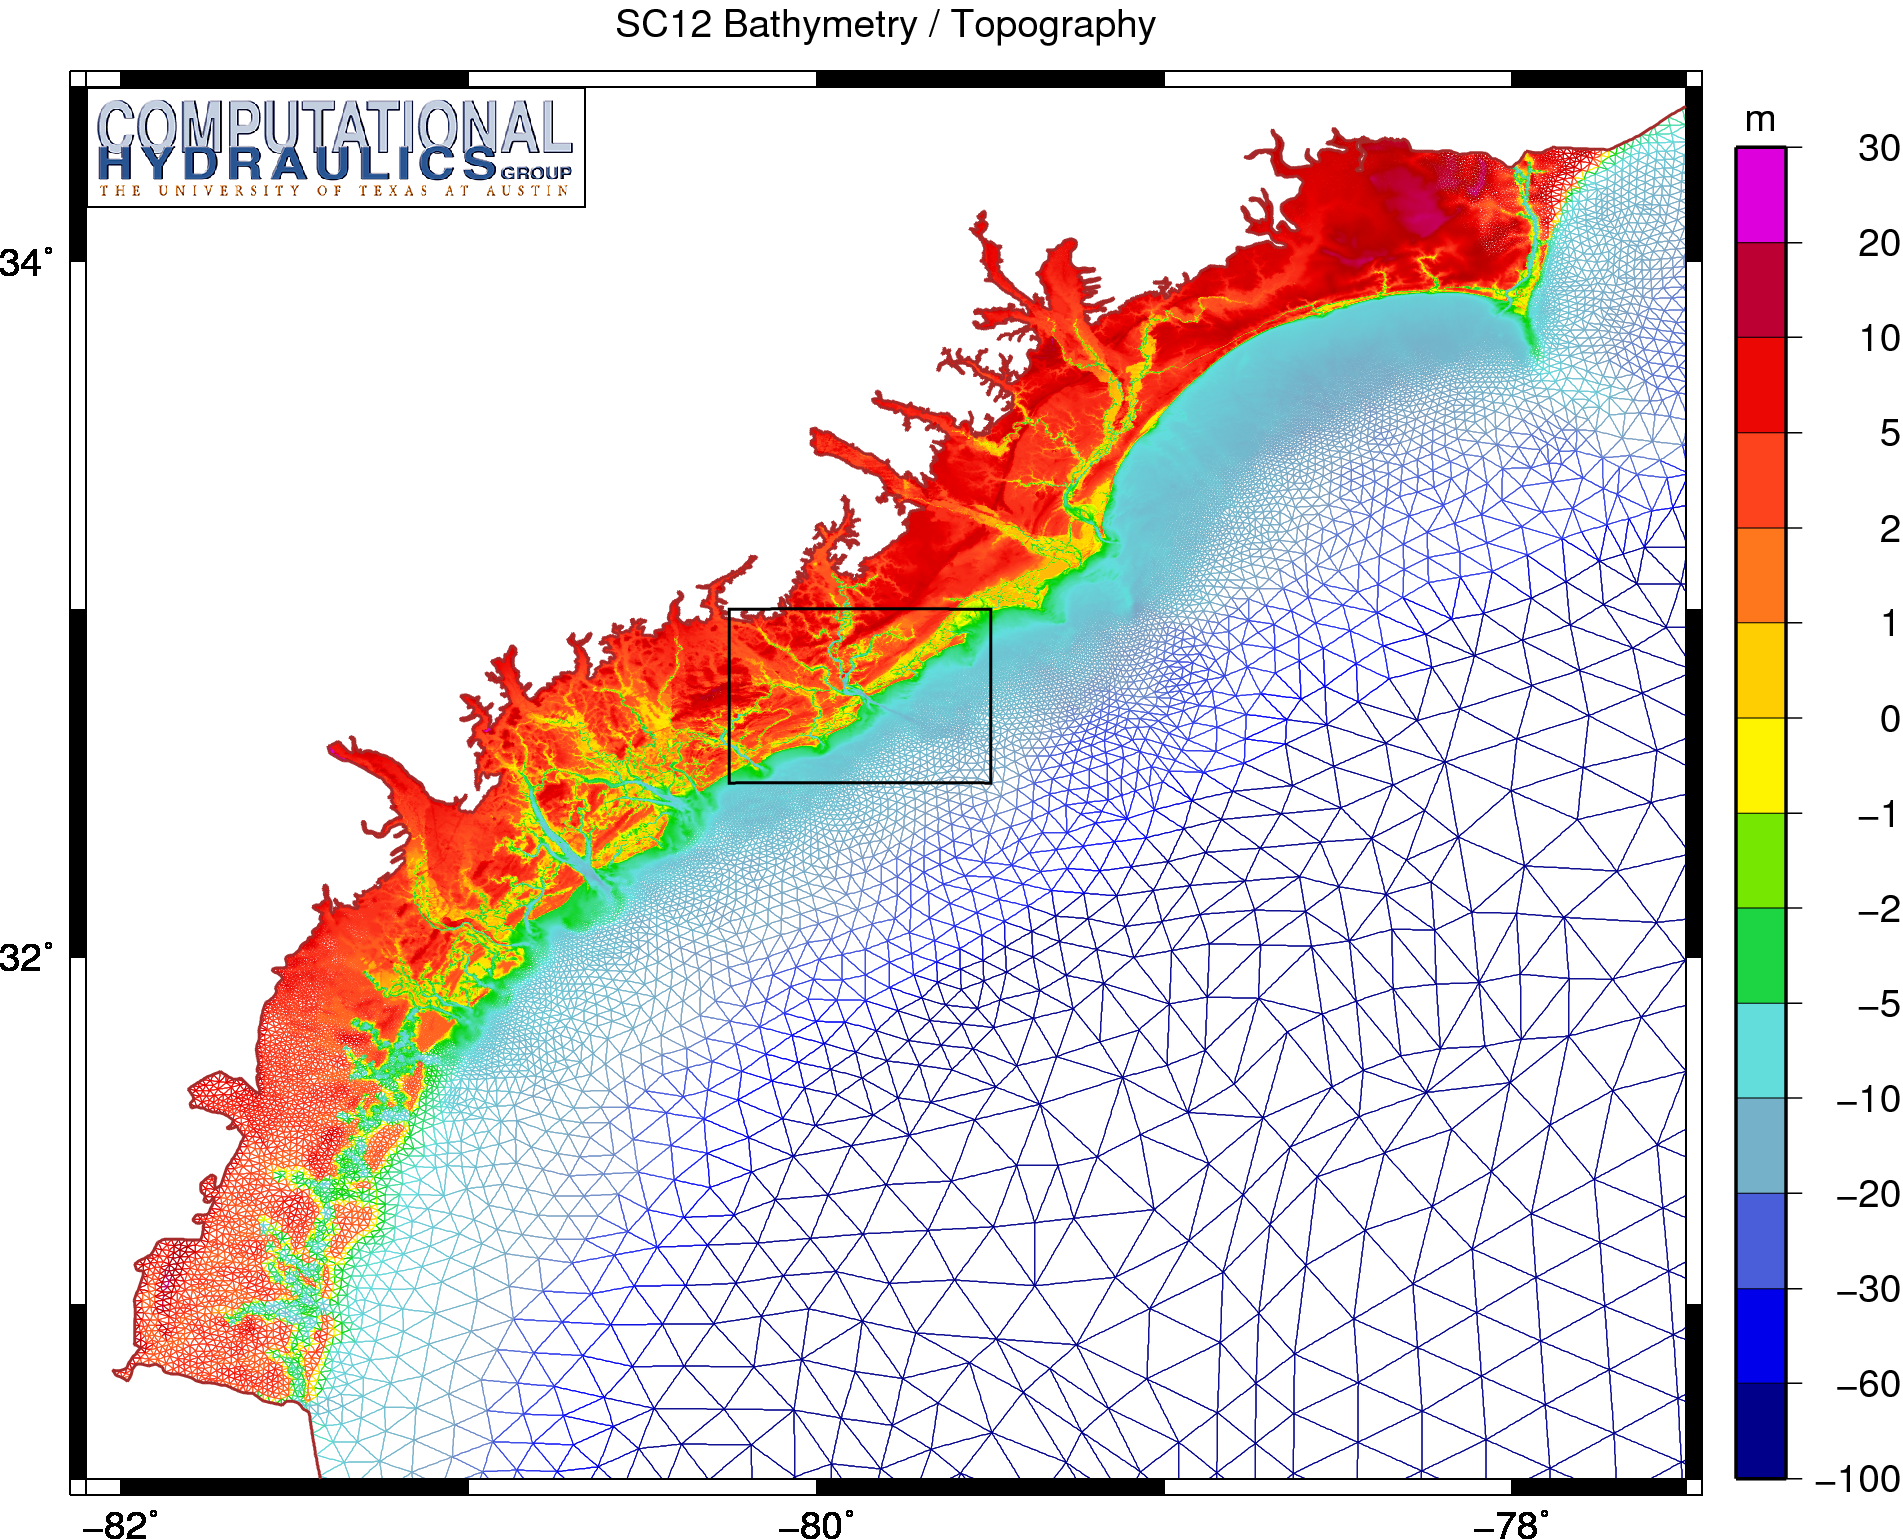 Bathymetry and topography (m) on the SC12 unstructured mesh.